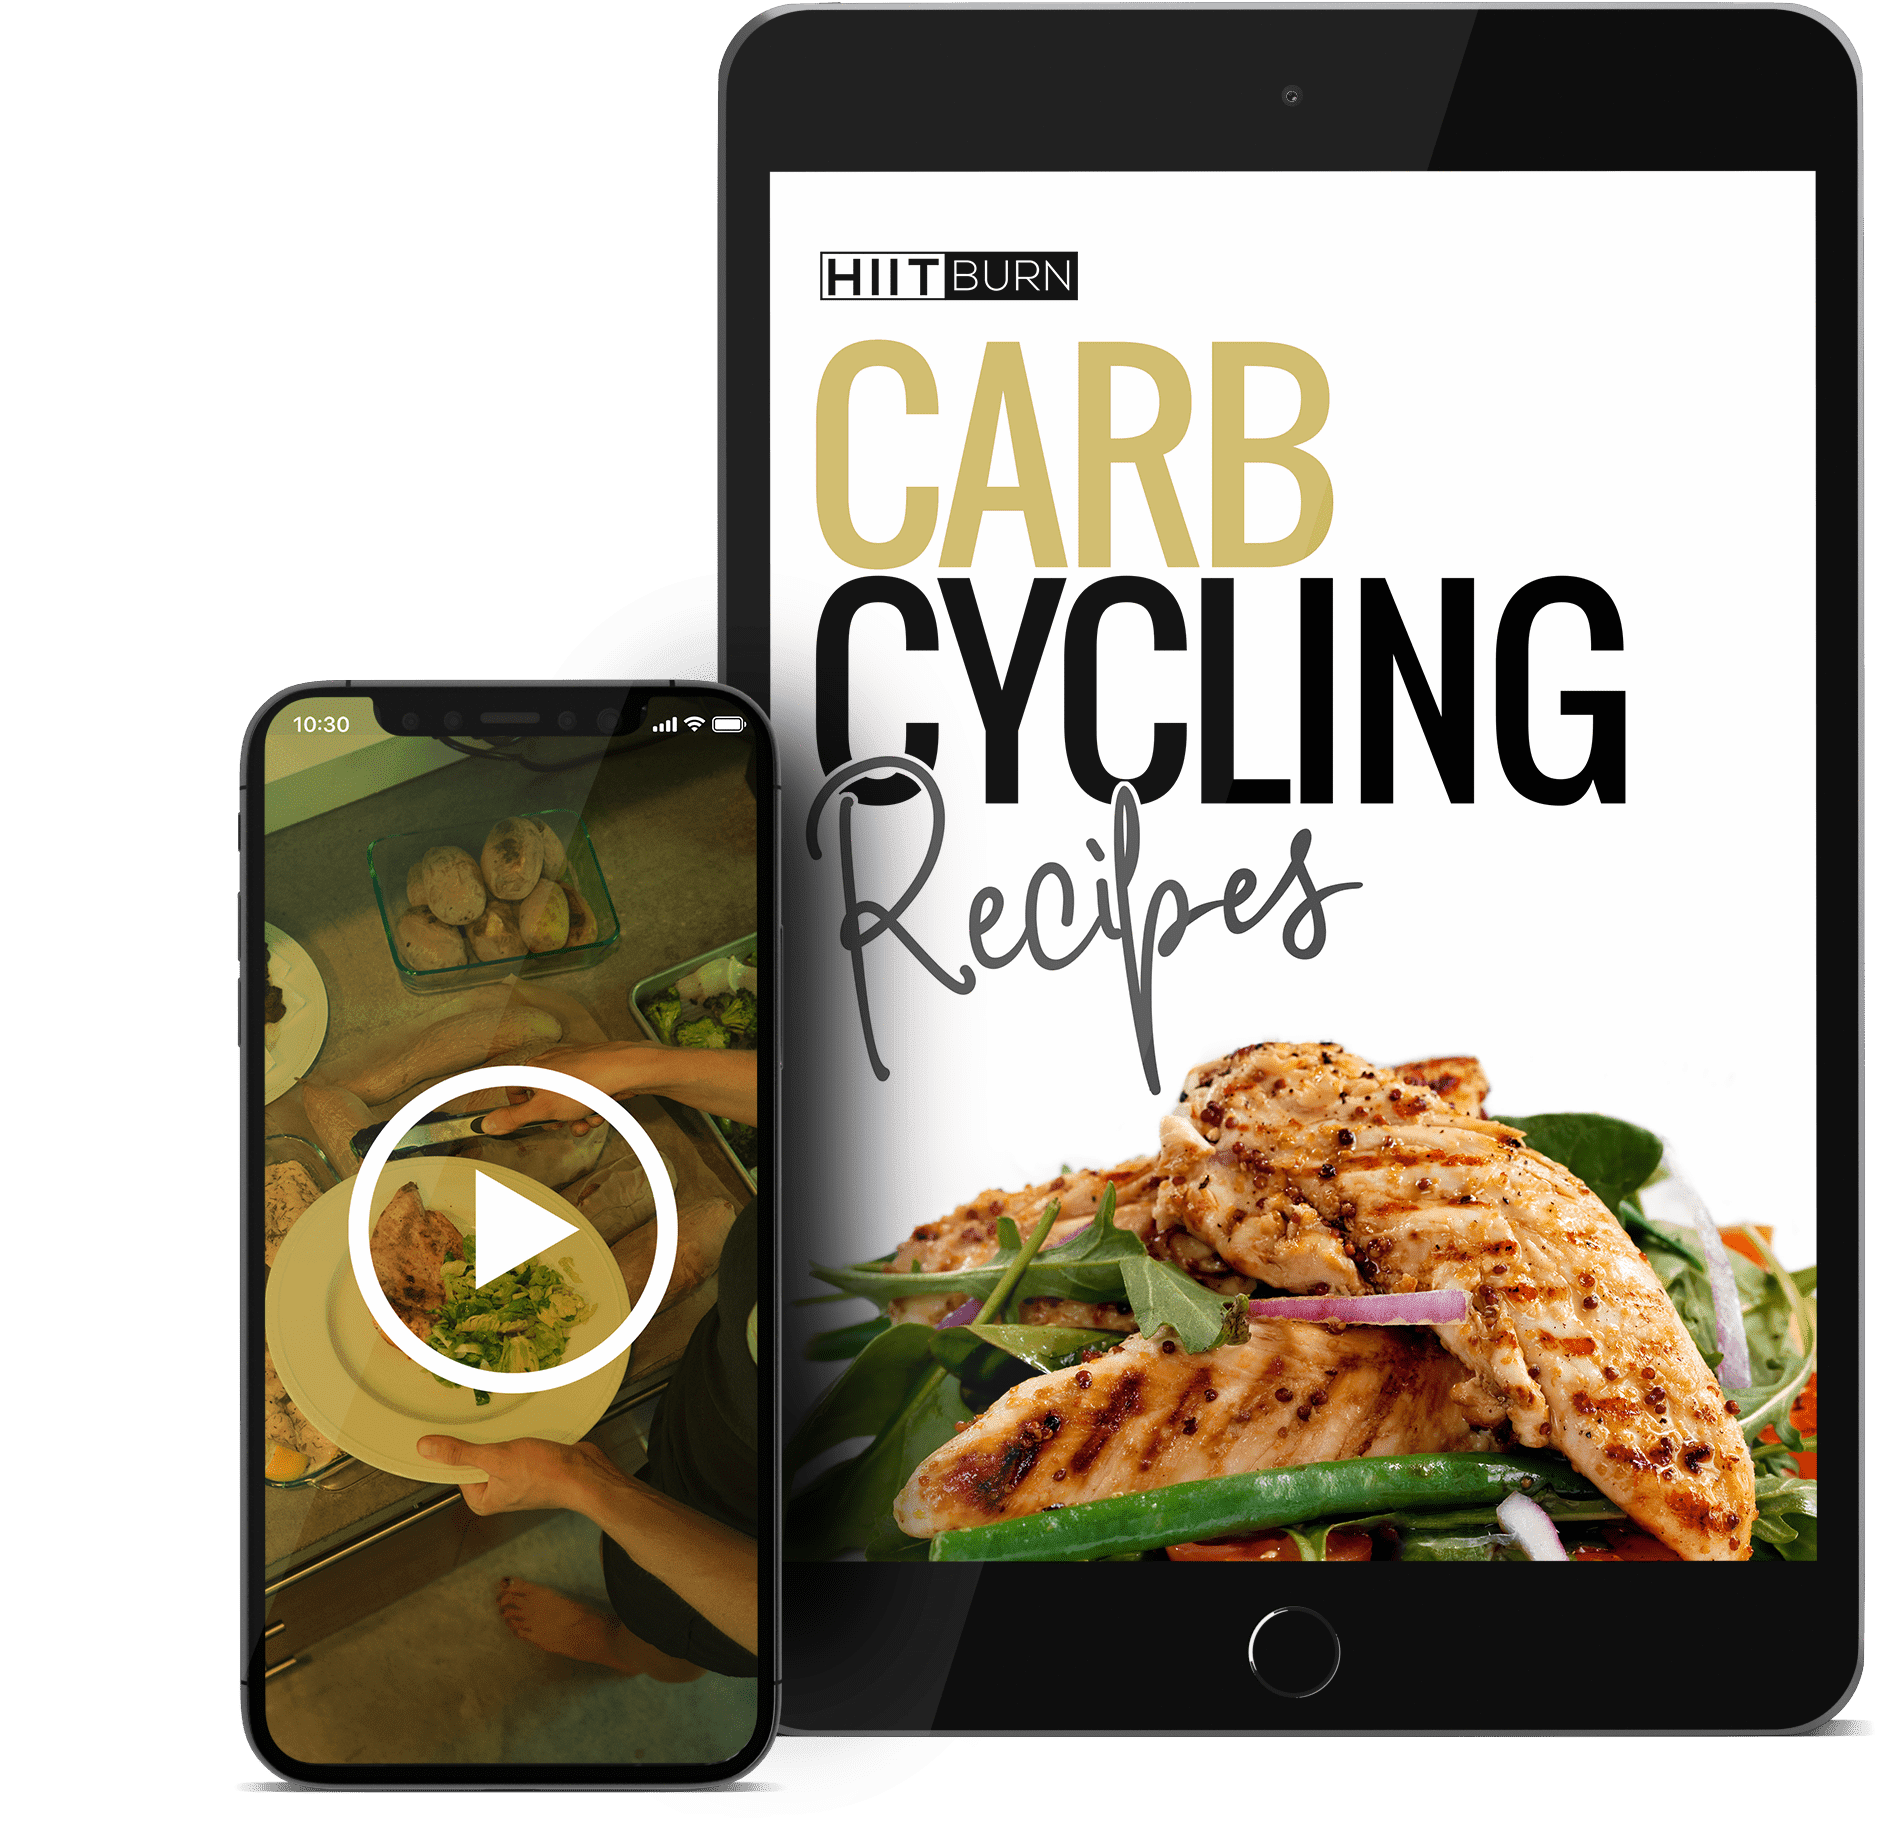 HIITBURN Carb Cycling Recipes